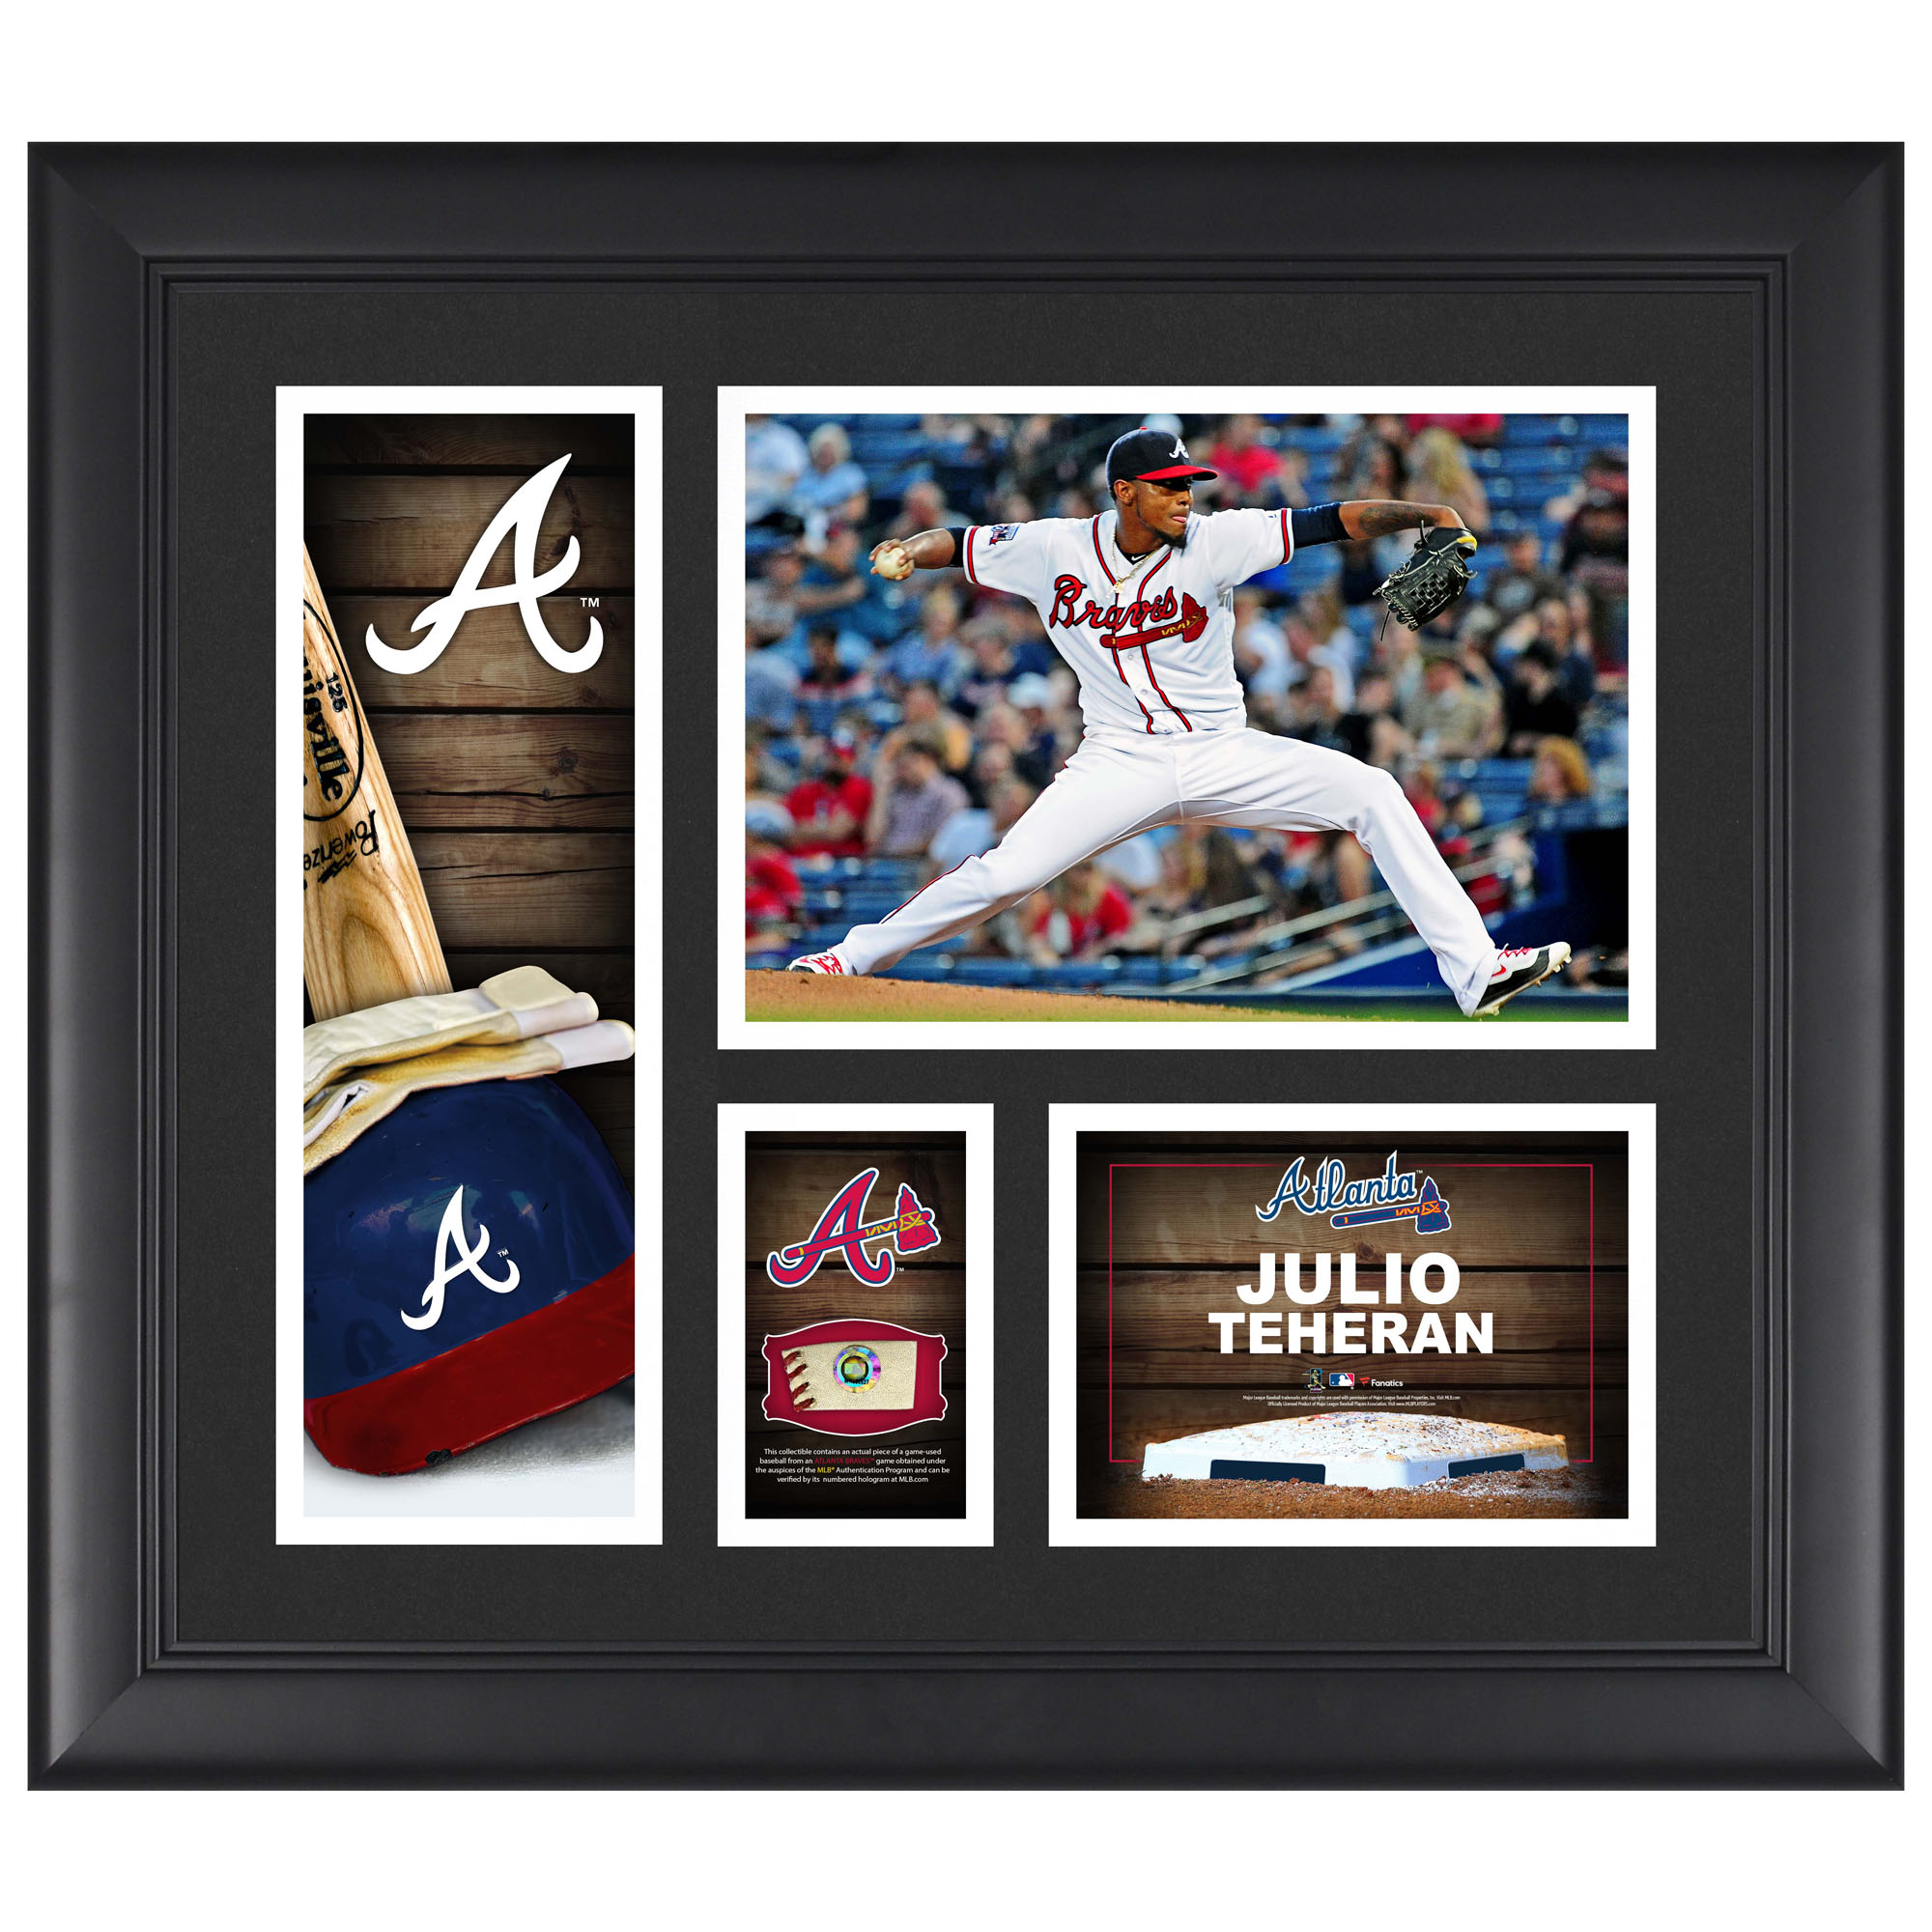 "Julio Teheran Atlanta Braves Fanatics Authentic Framed 15"" x 17"" Player Collage with a Piece of Game-Used Ball - No Size"